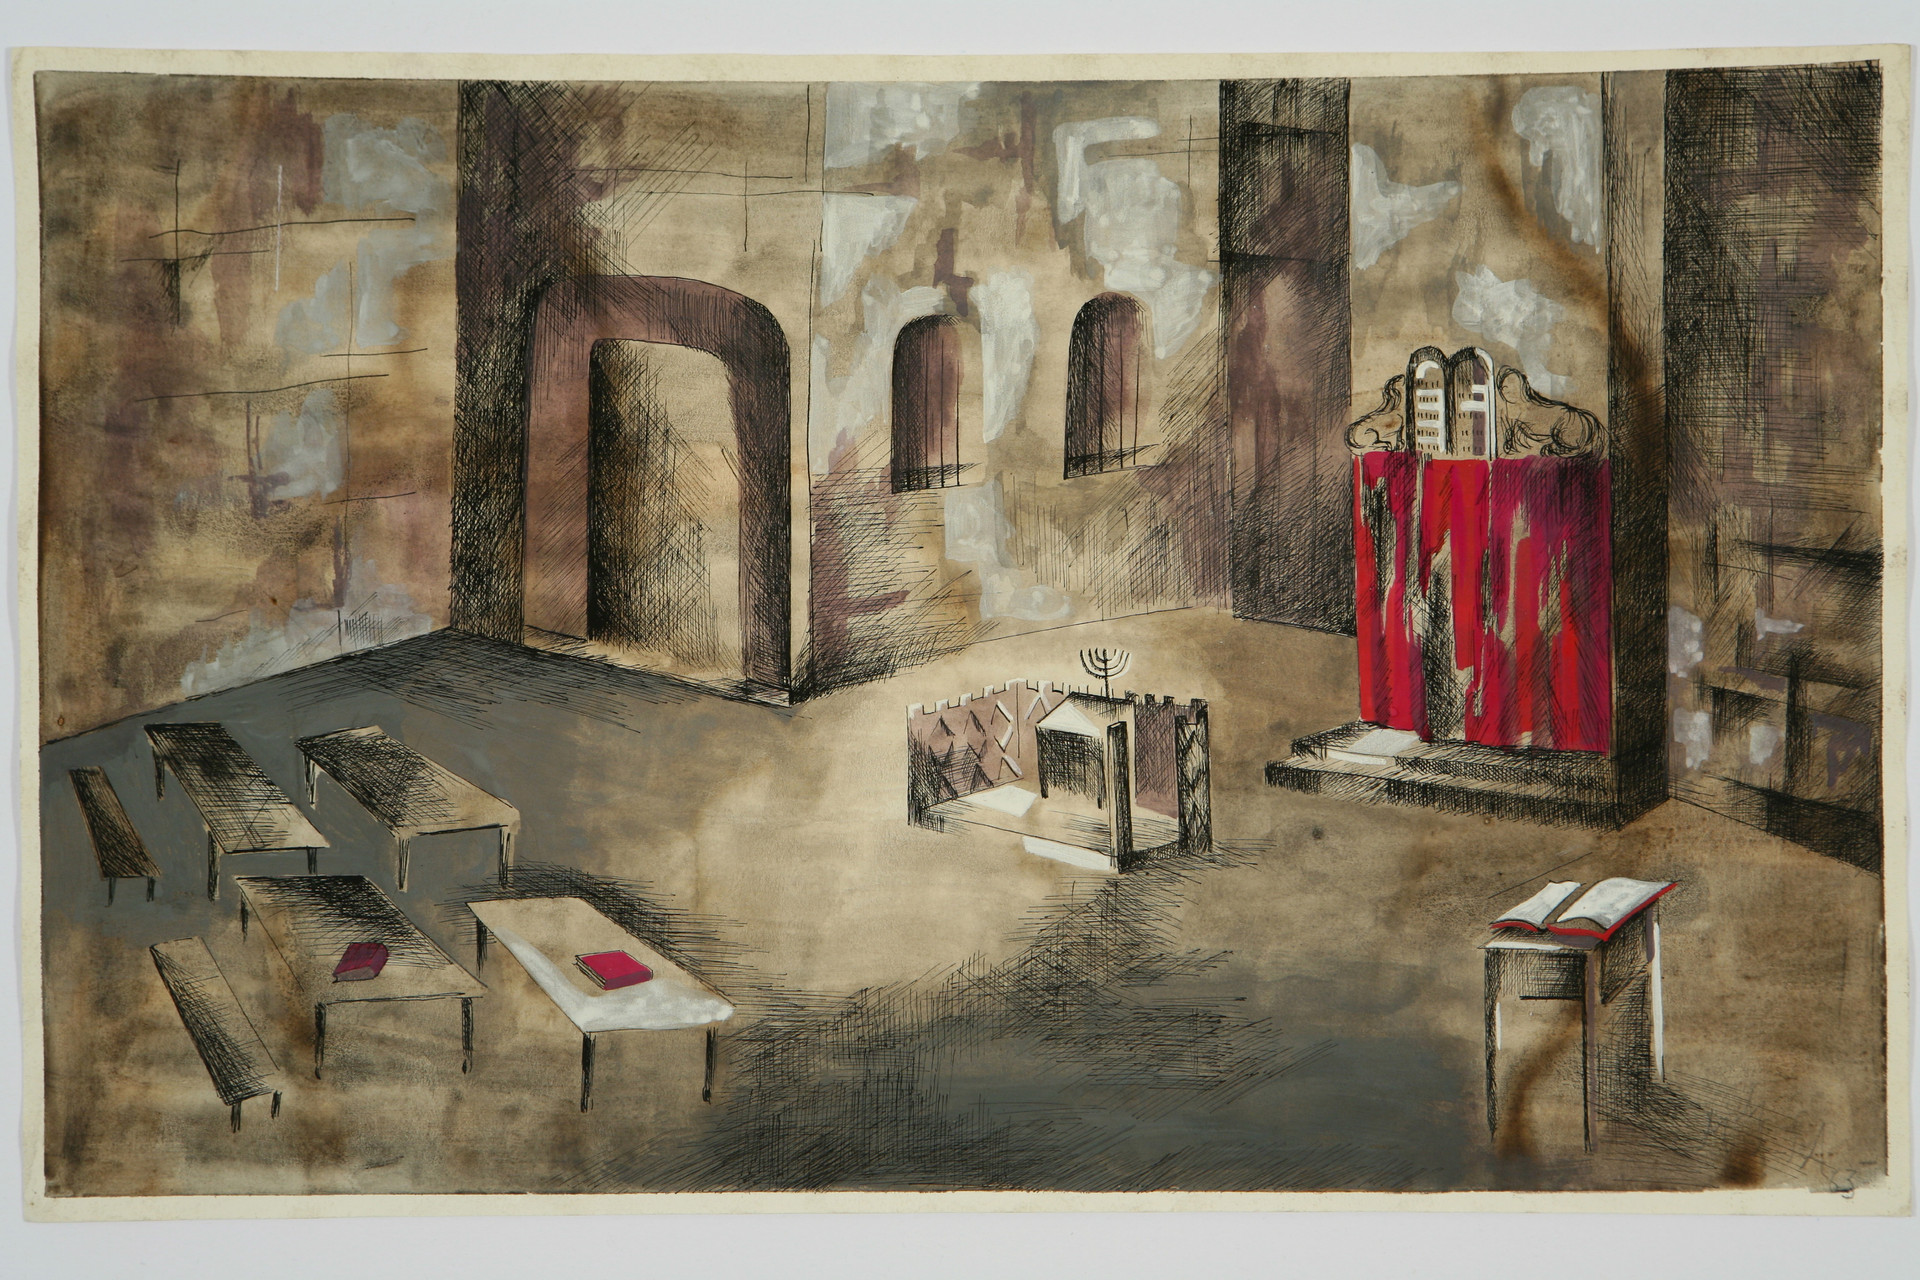 The Dybbuk, preliminary study for set design - Interior of synagogue, Act III, Scene 2